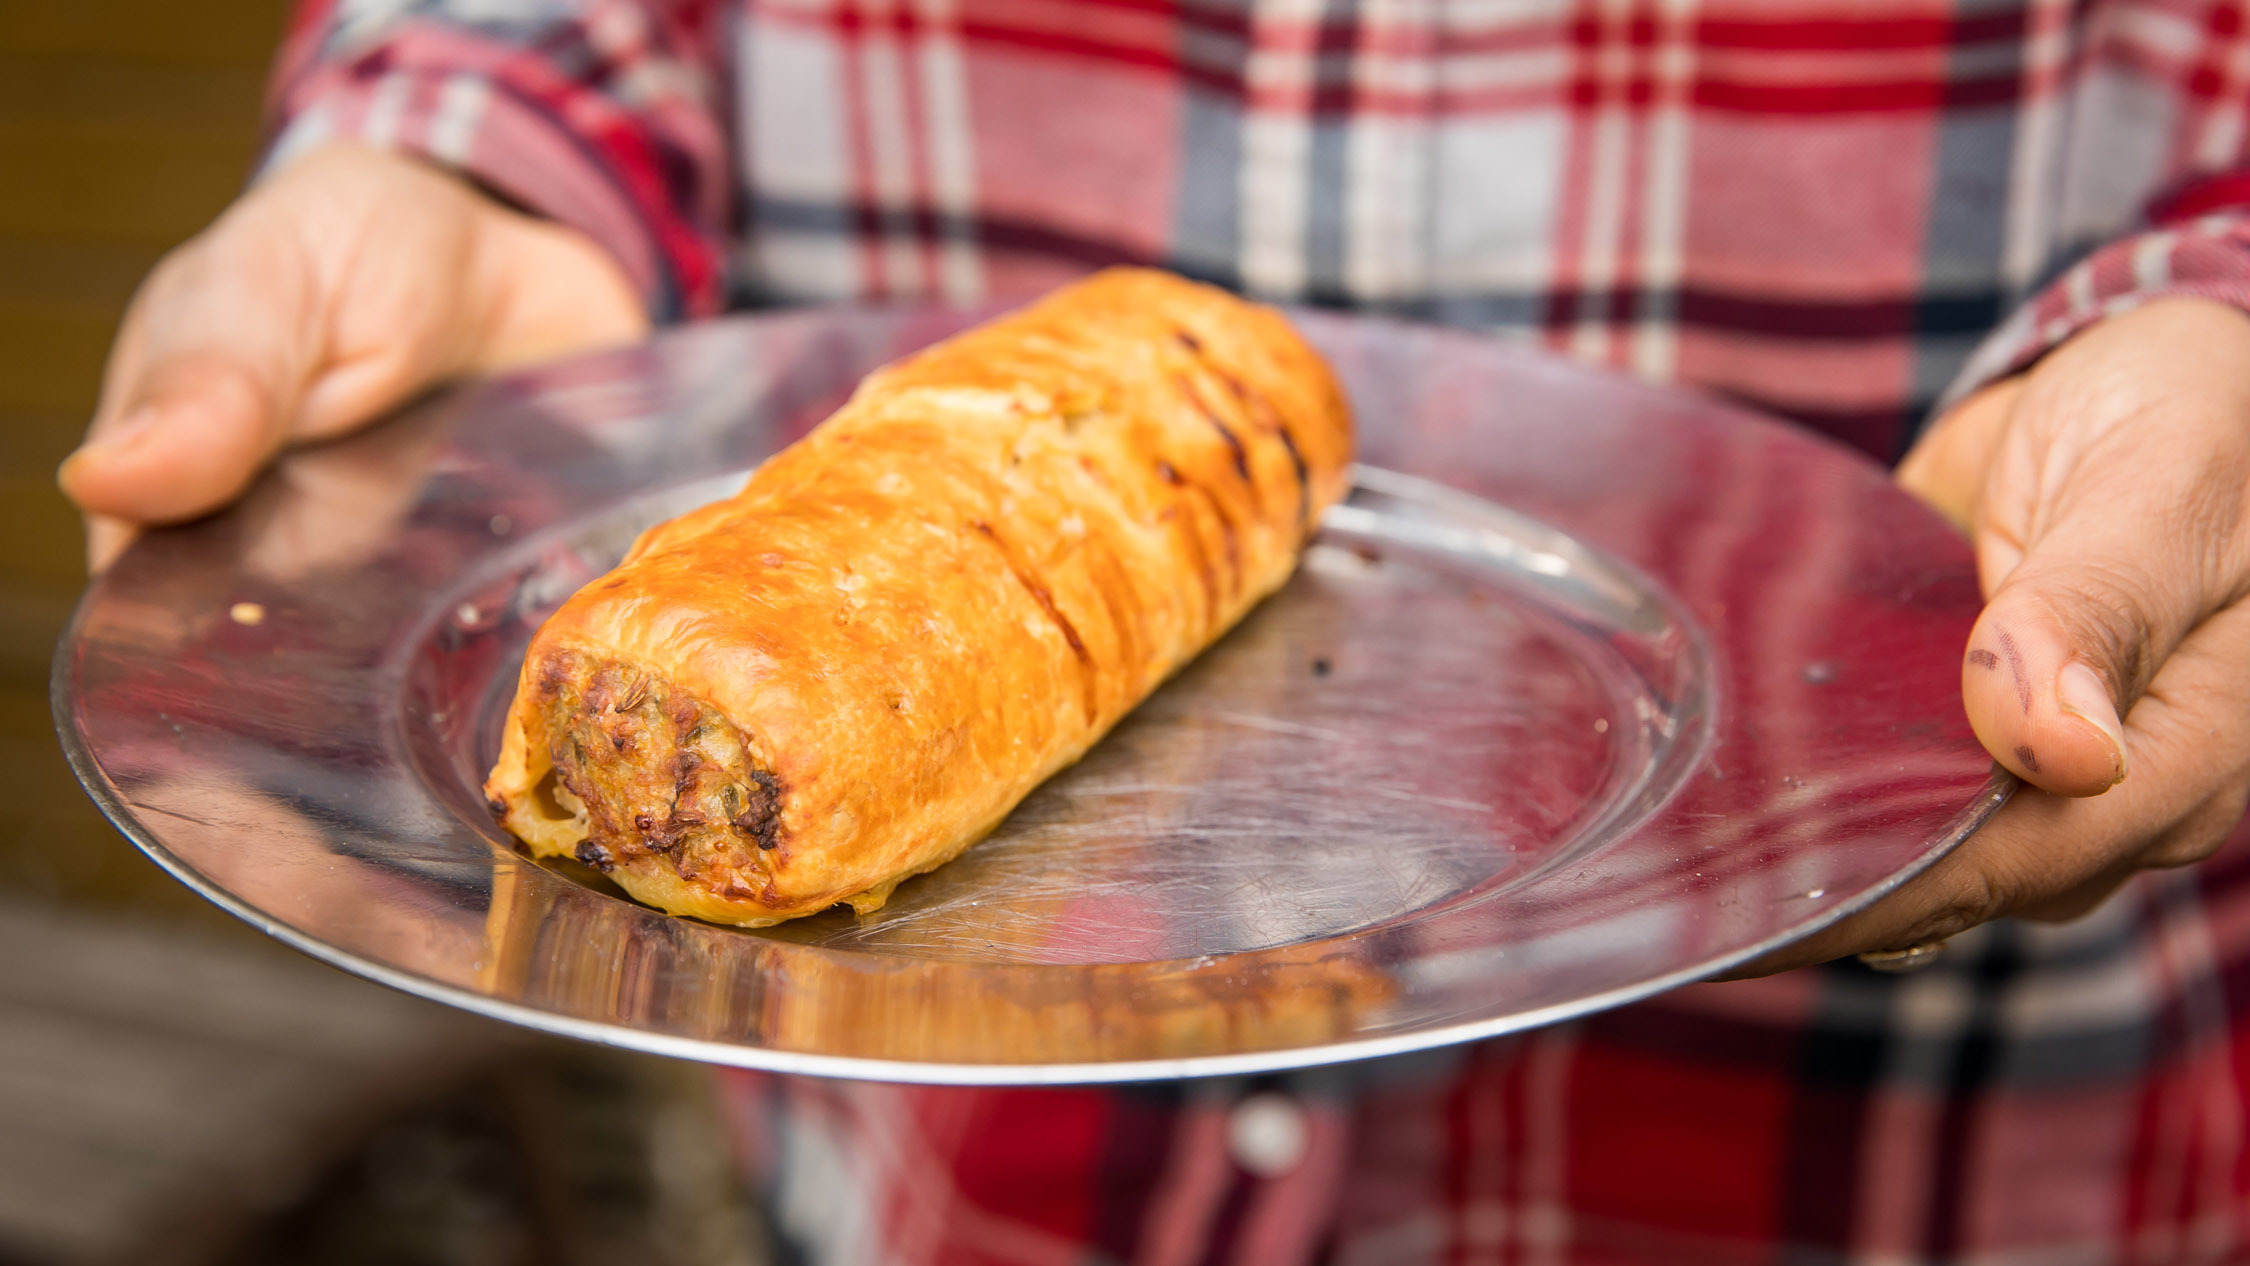 Bourke Street Bakery Surry Hills Sausage roll